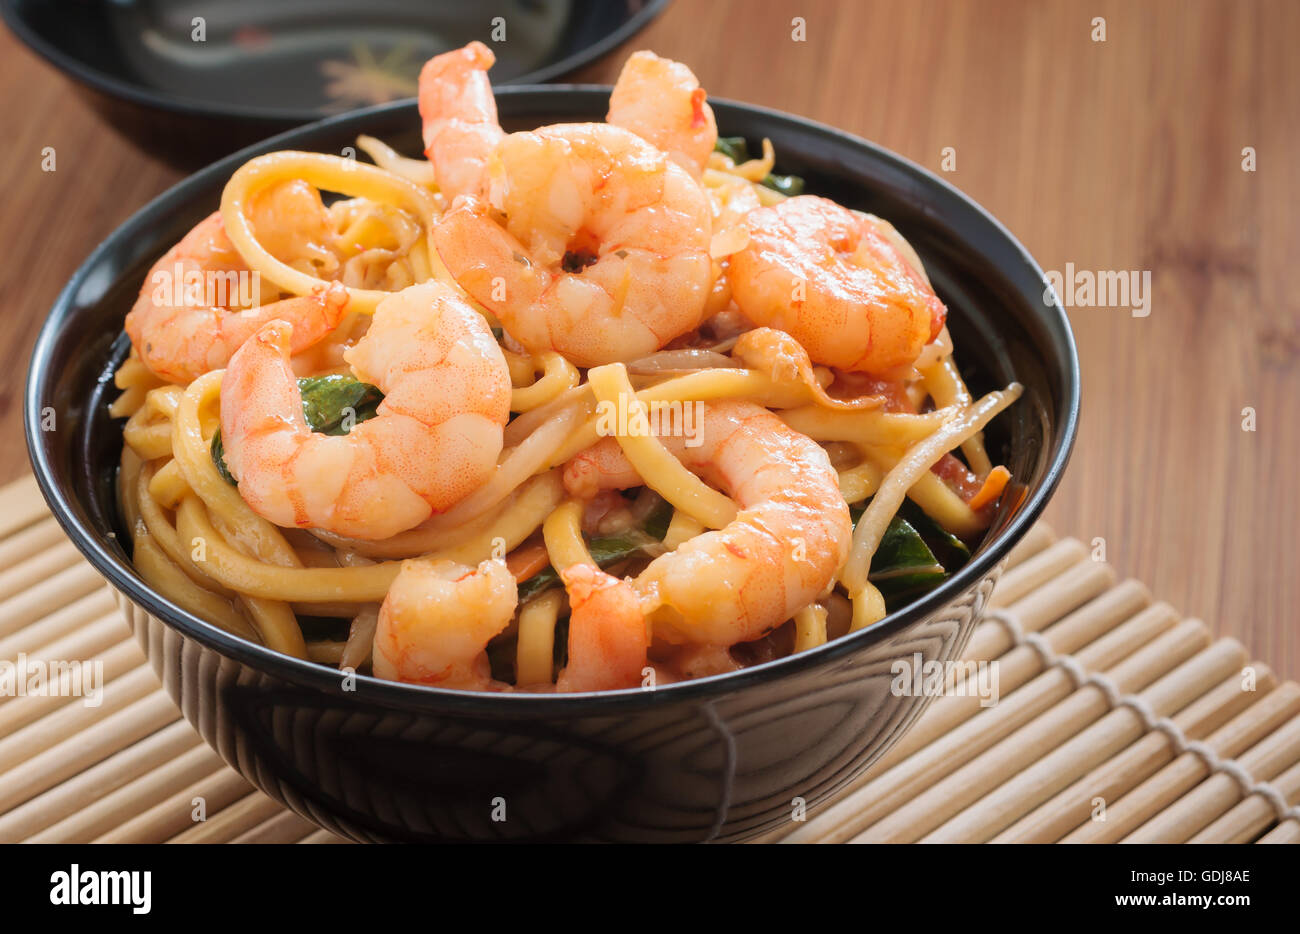 Prawn Chow Mein or Lo Mein stir fried prawns with egg noodles vegetables and bean sprouts - Stock Image